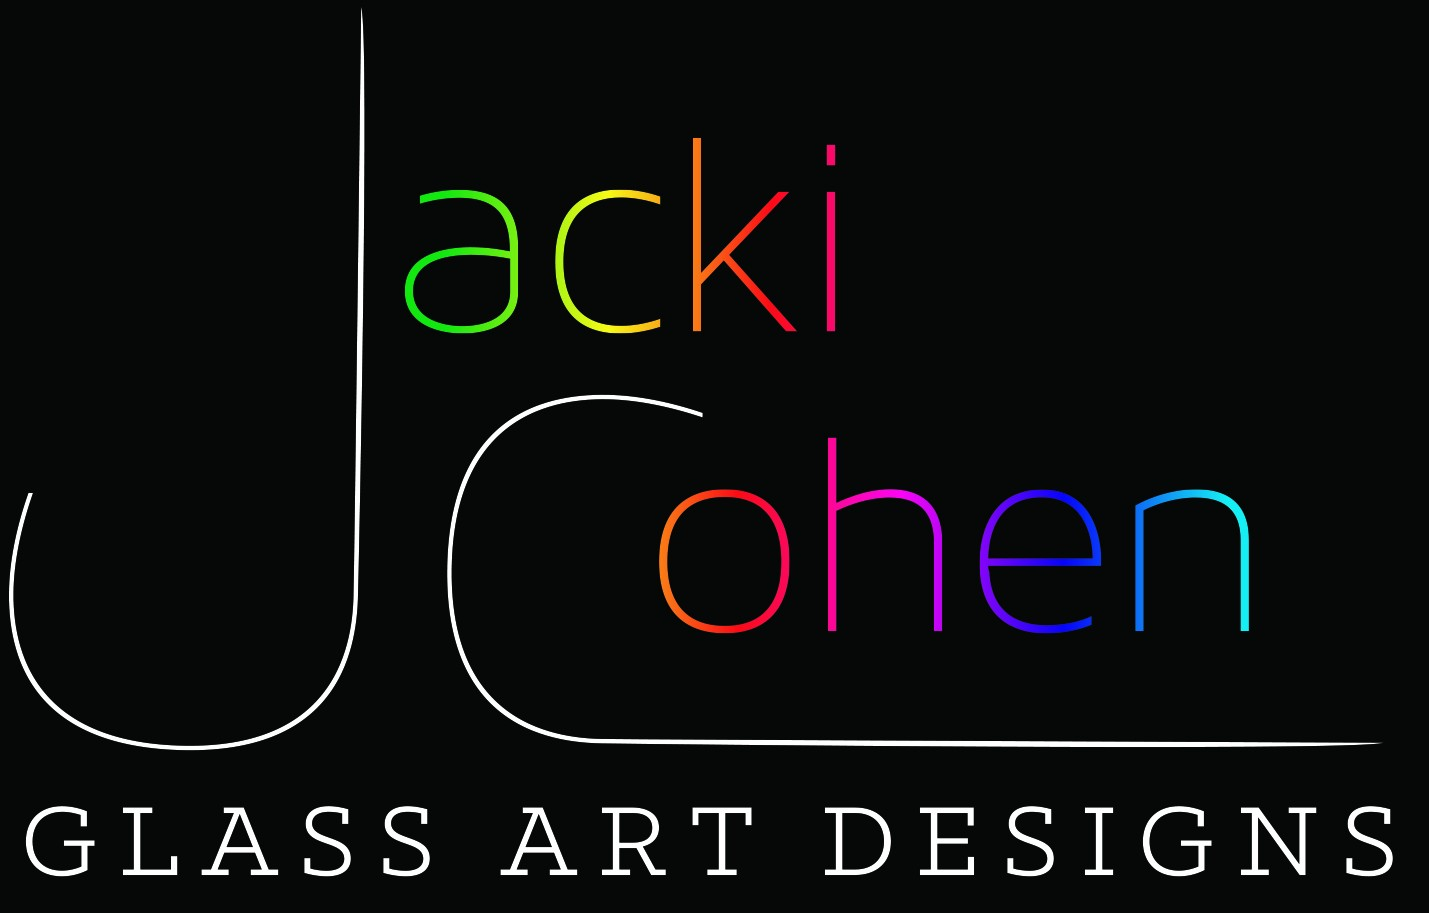 shop.jackicohenglassartdesigns.com